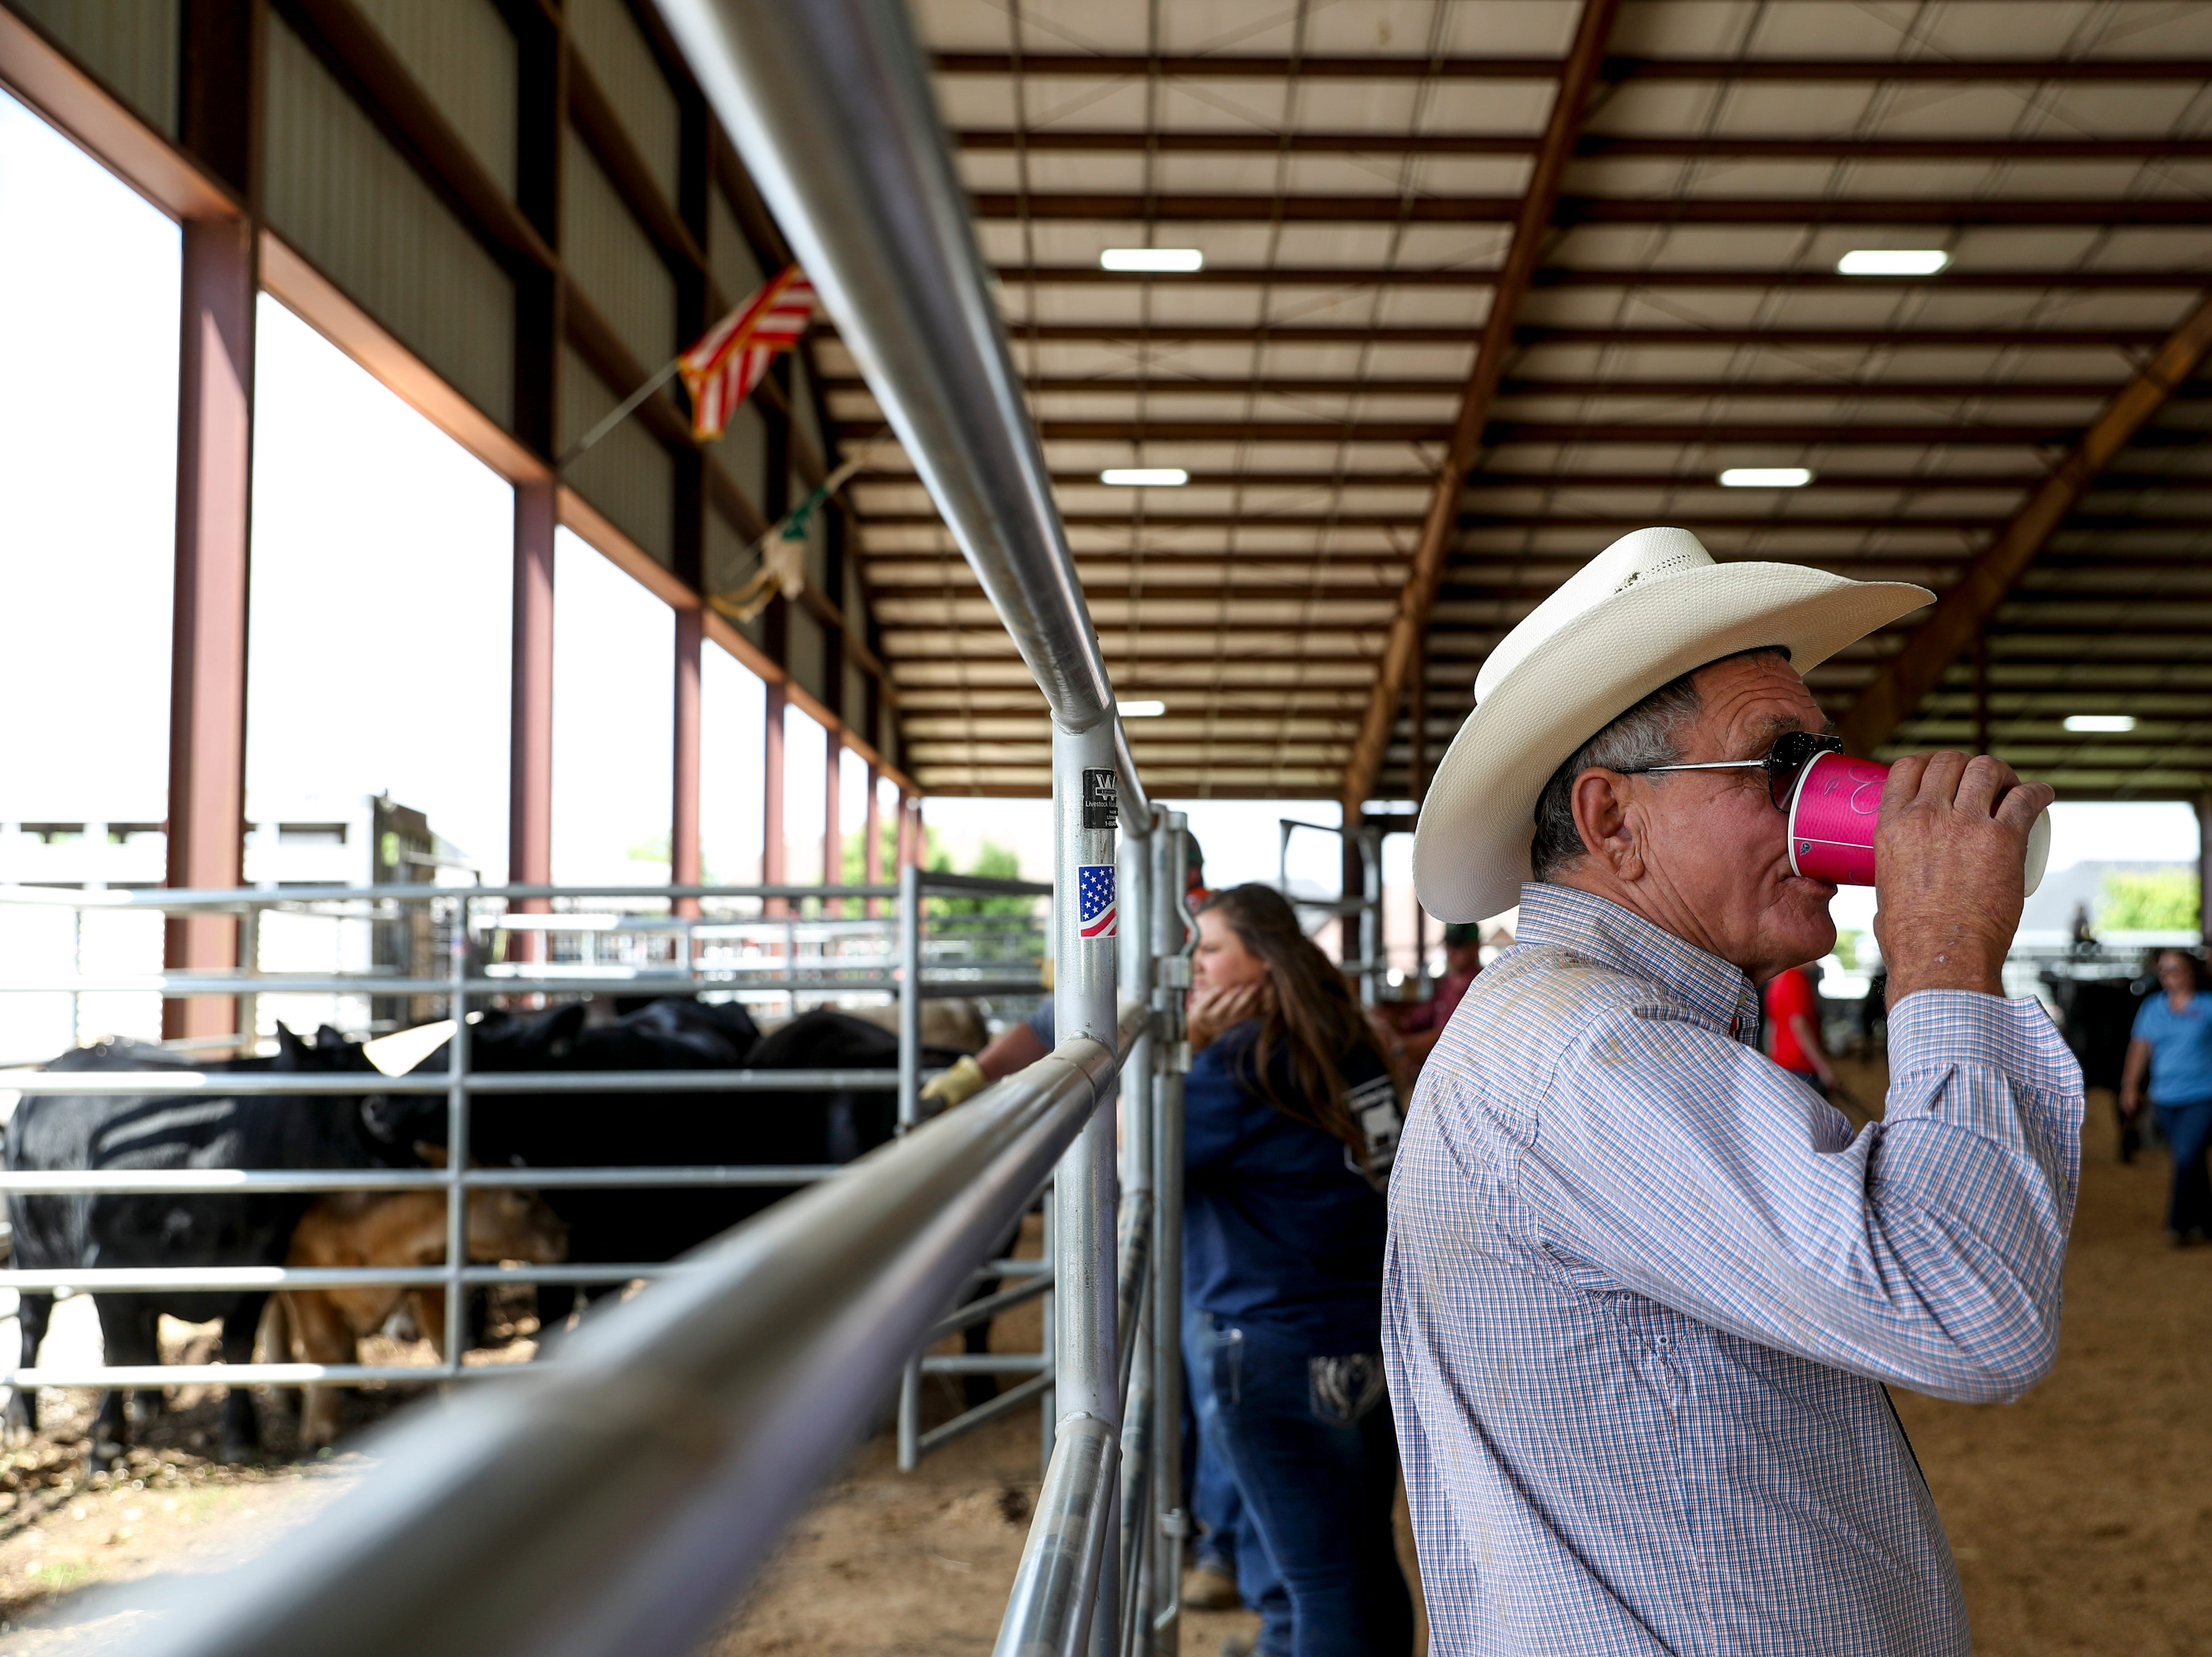 Farmers stand at the gates to holding pens for their truck trailers at the 69th annual Clarksville Area Junior Better Beef Show at the John Bartee Agricultural Center in Clarksville, Tenn., on Tuesday, May 14, 2019.